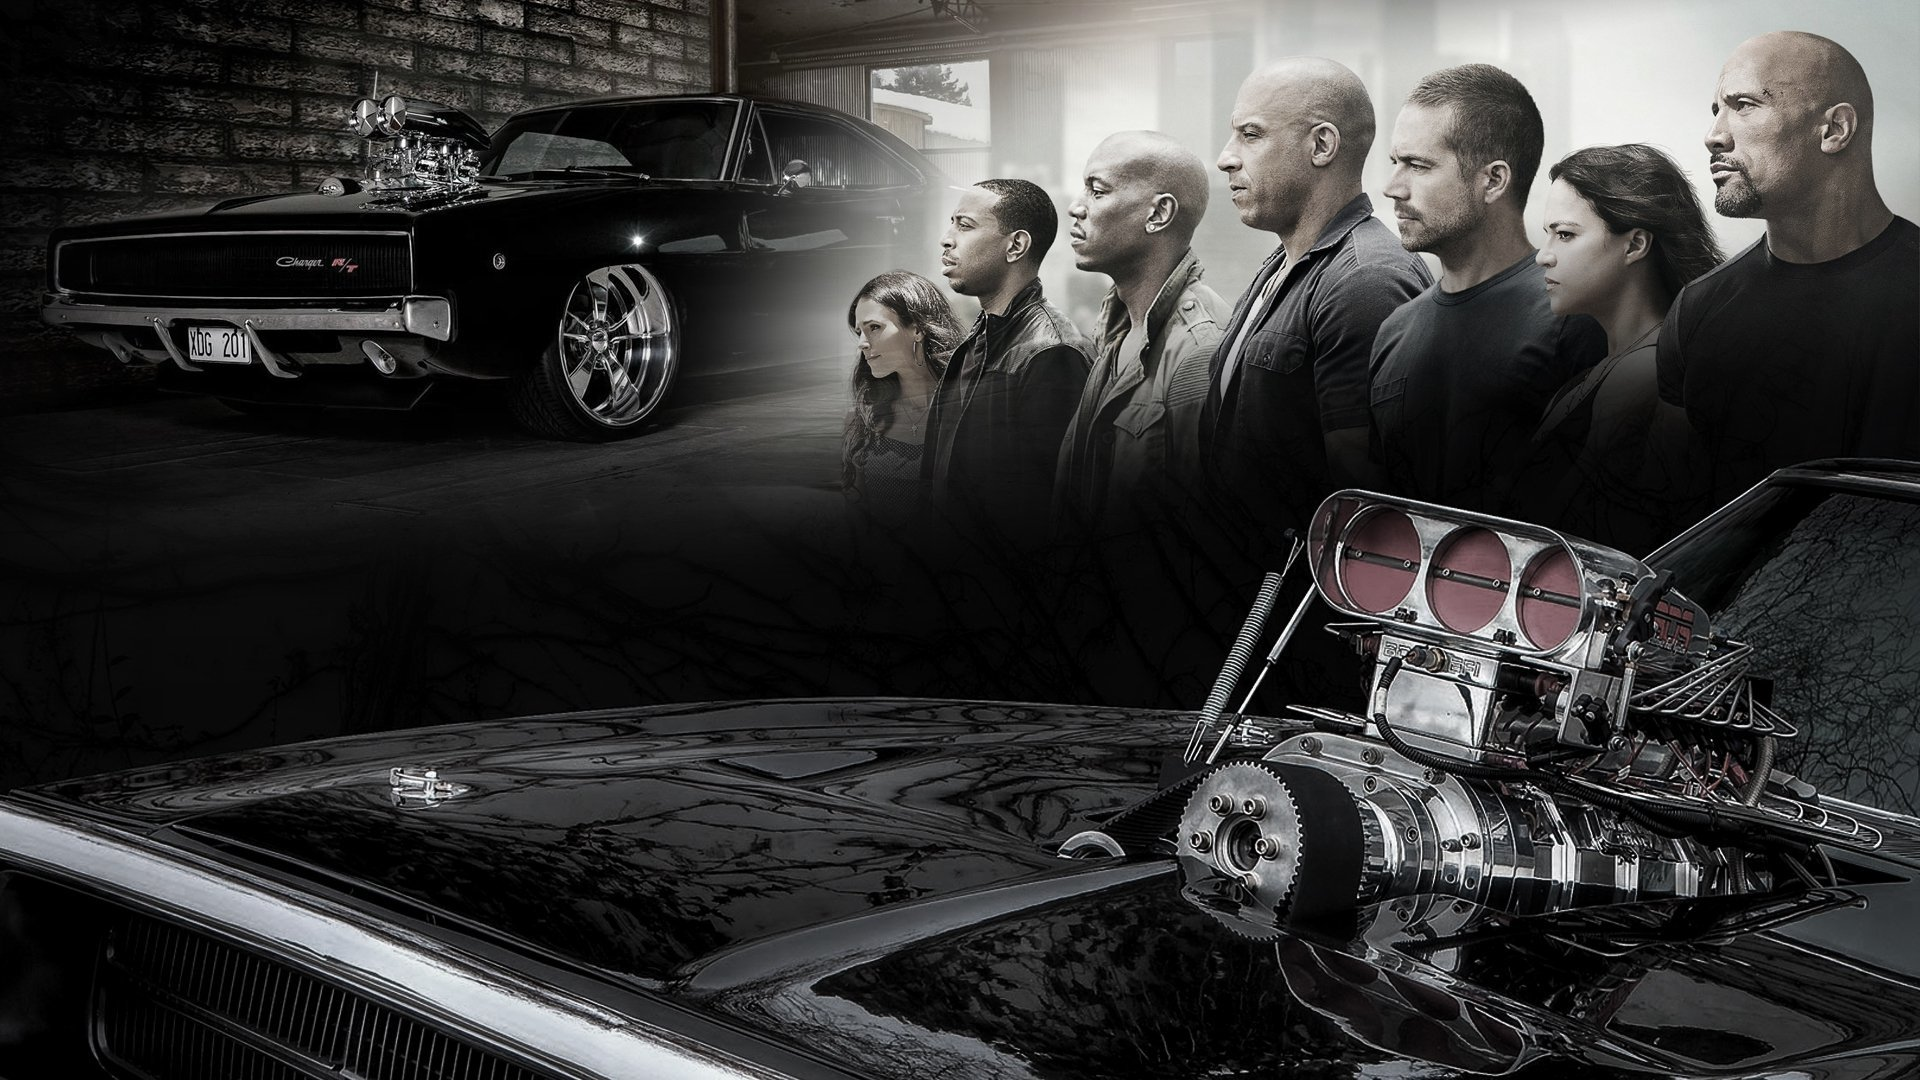 76 Furious 7 Hd Wallpapers Background Images Wallpaper Abyss